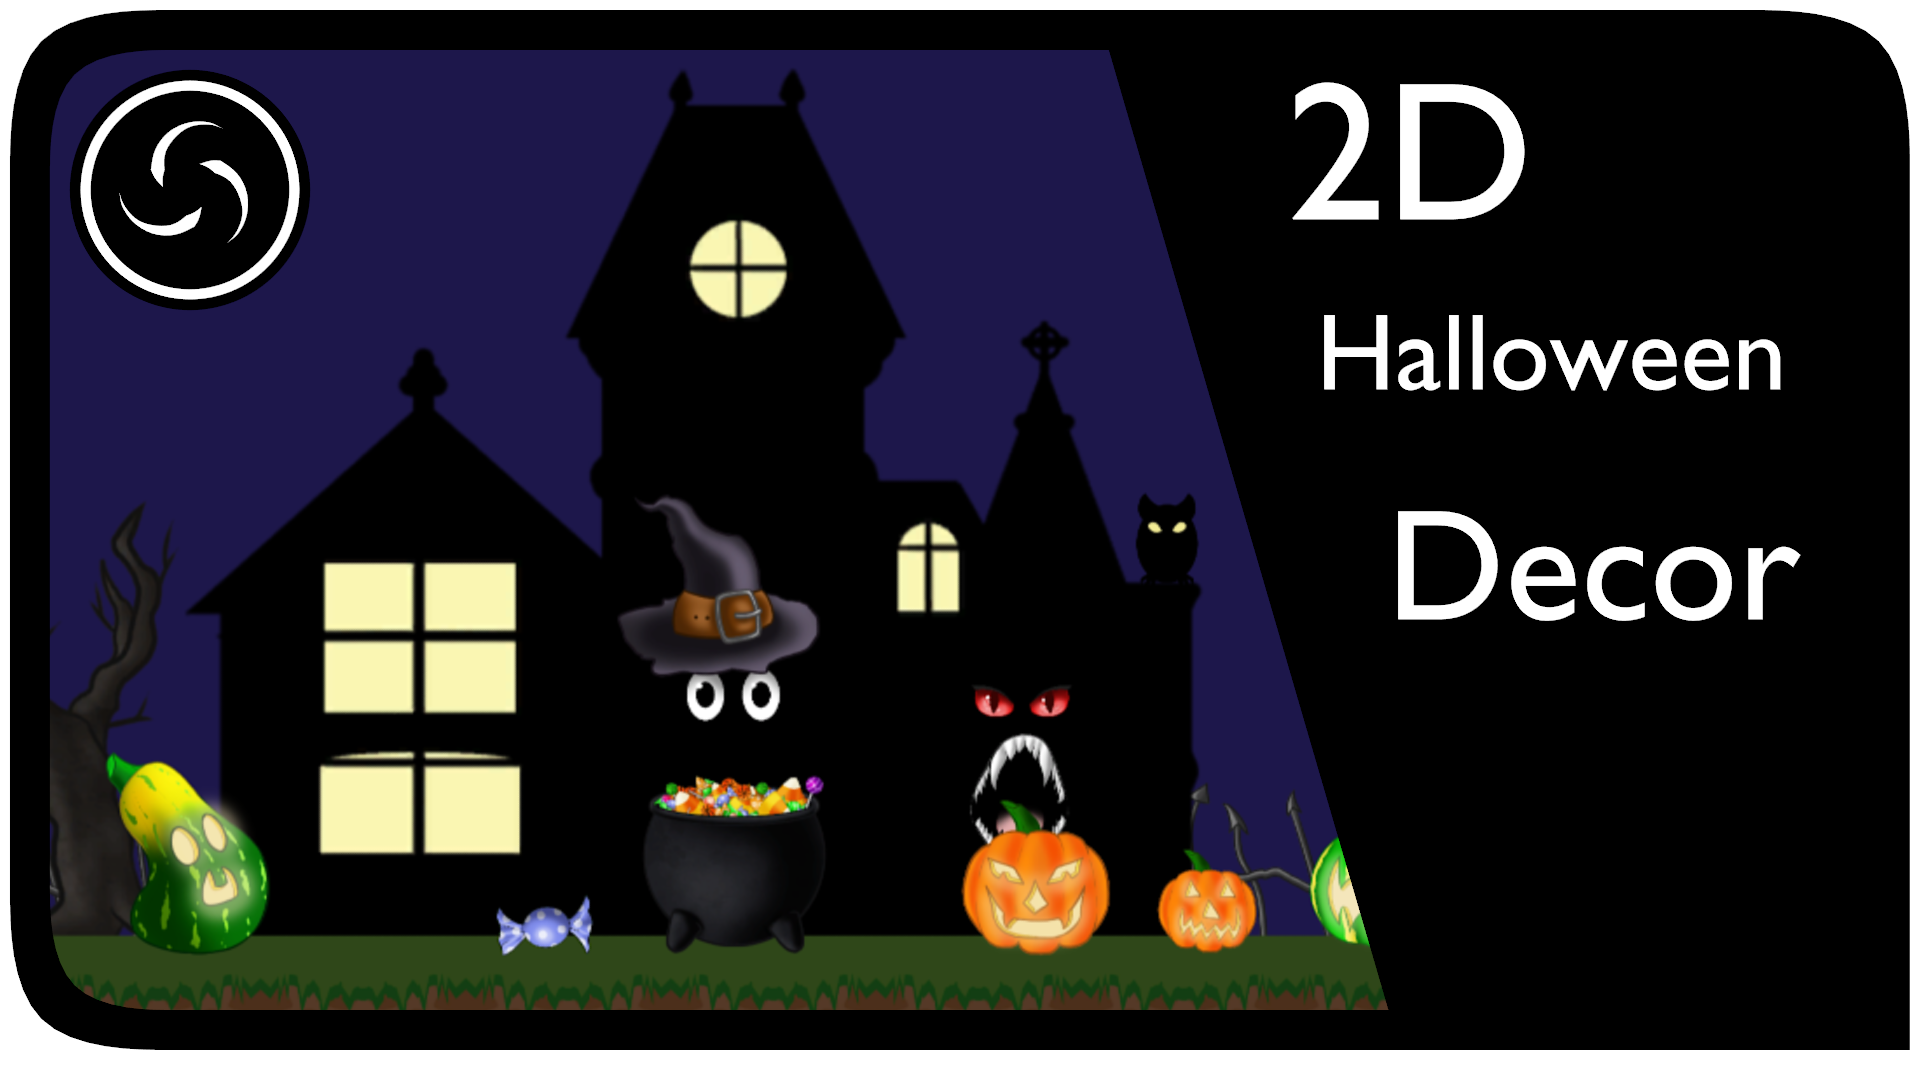 2D Halloween Decoration